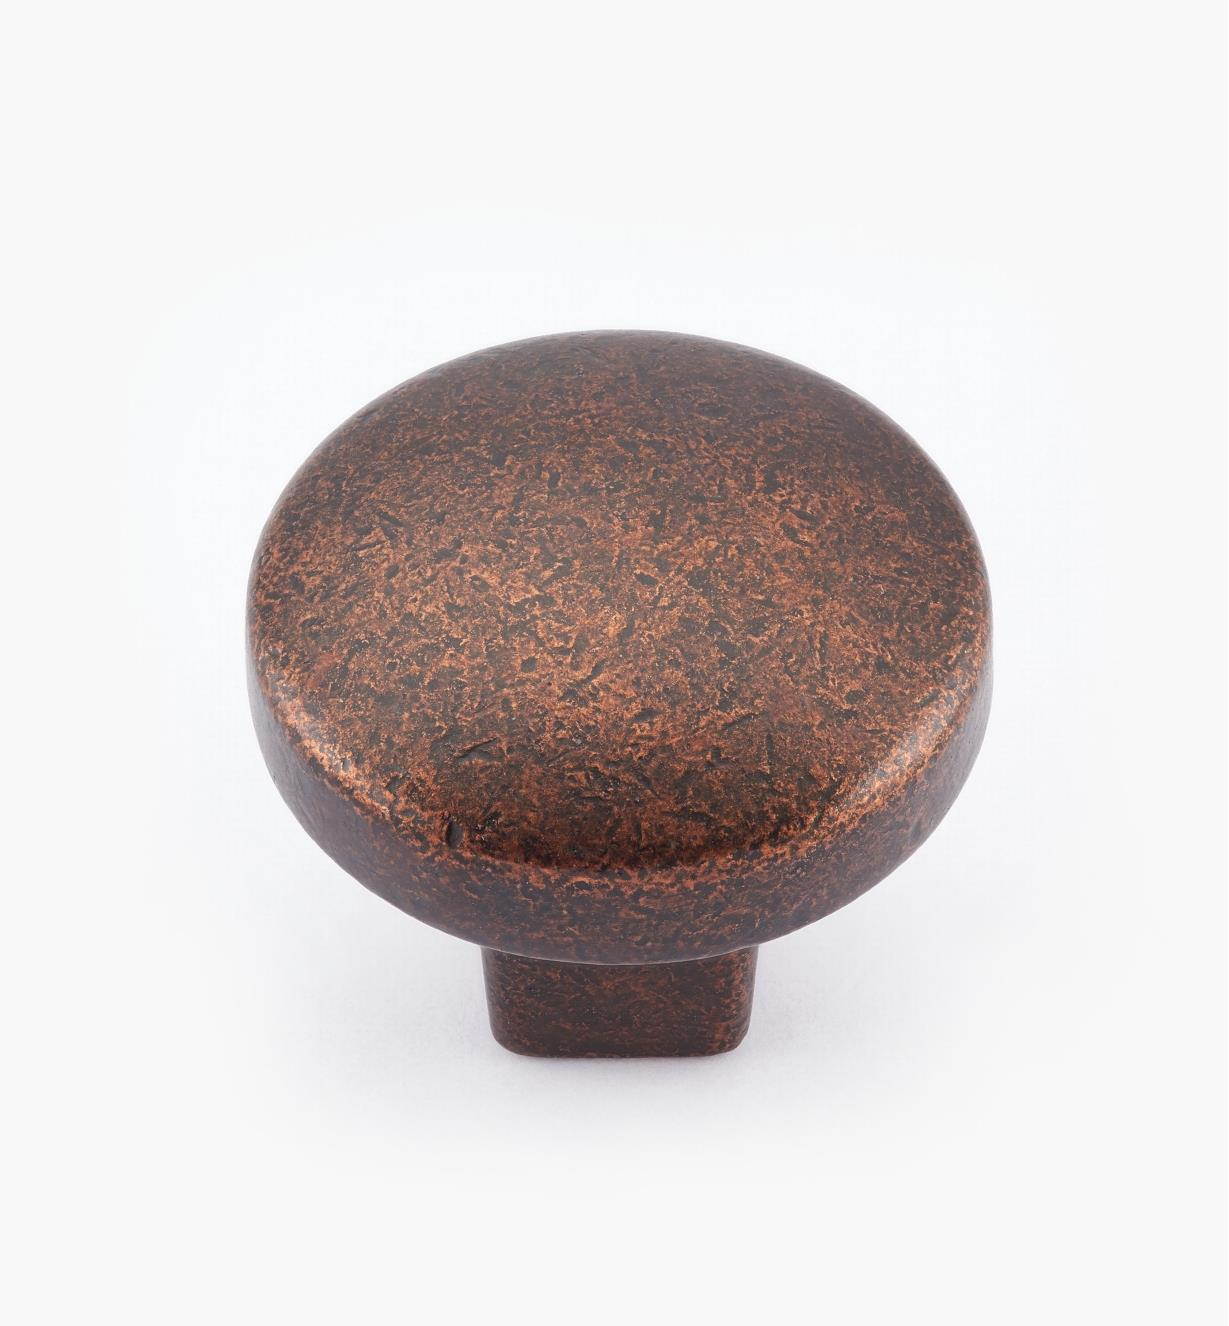 02A0972 - Forgings Rich Bronze Castings Knob